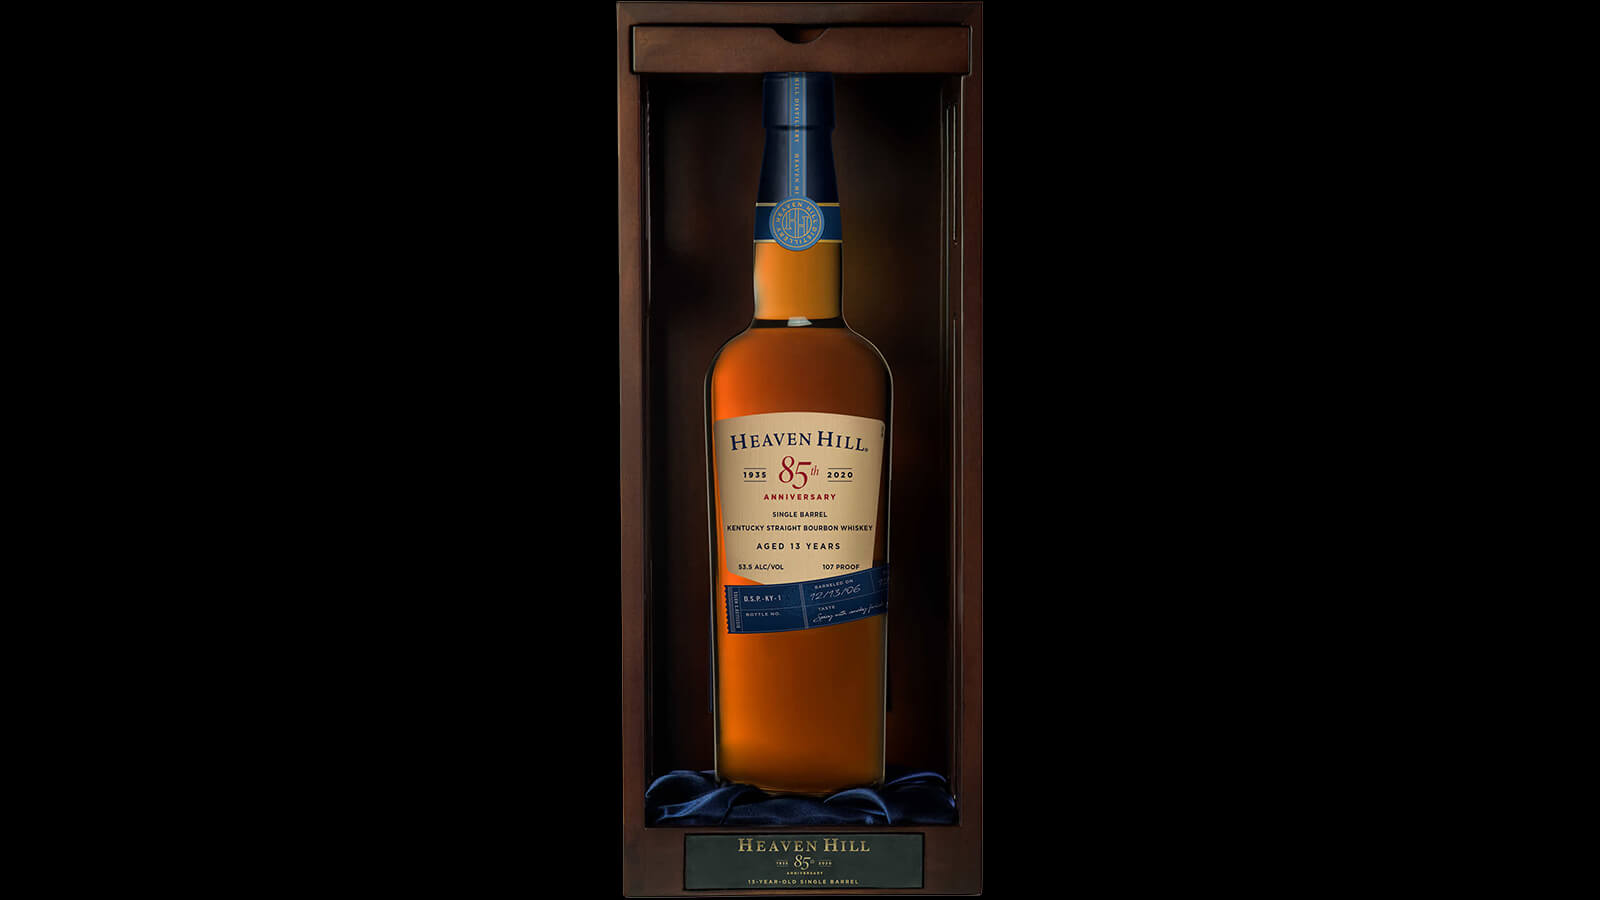 Heaven-Hill-Distillery-85th-Anniversary-13-Year-Old-Single-Barrel-Kentucky-Straight-Bourbon-Whiskey